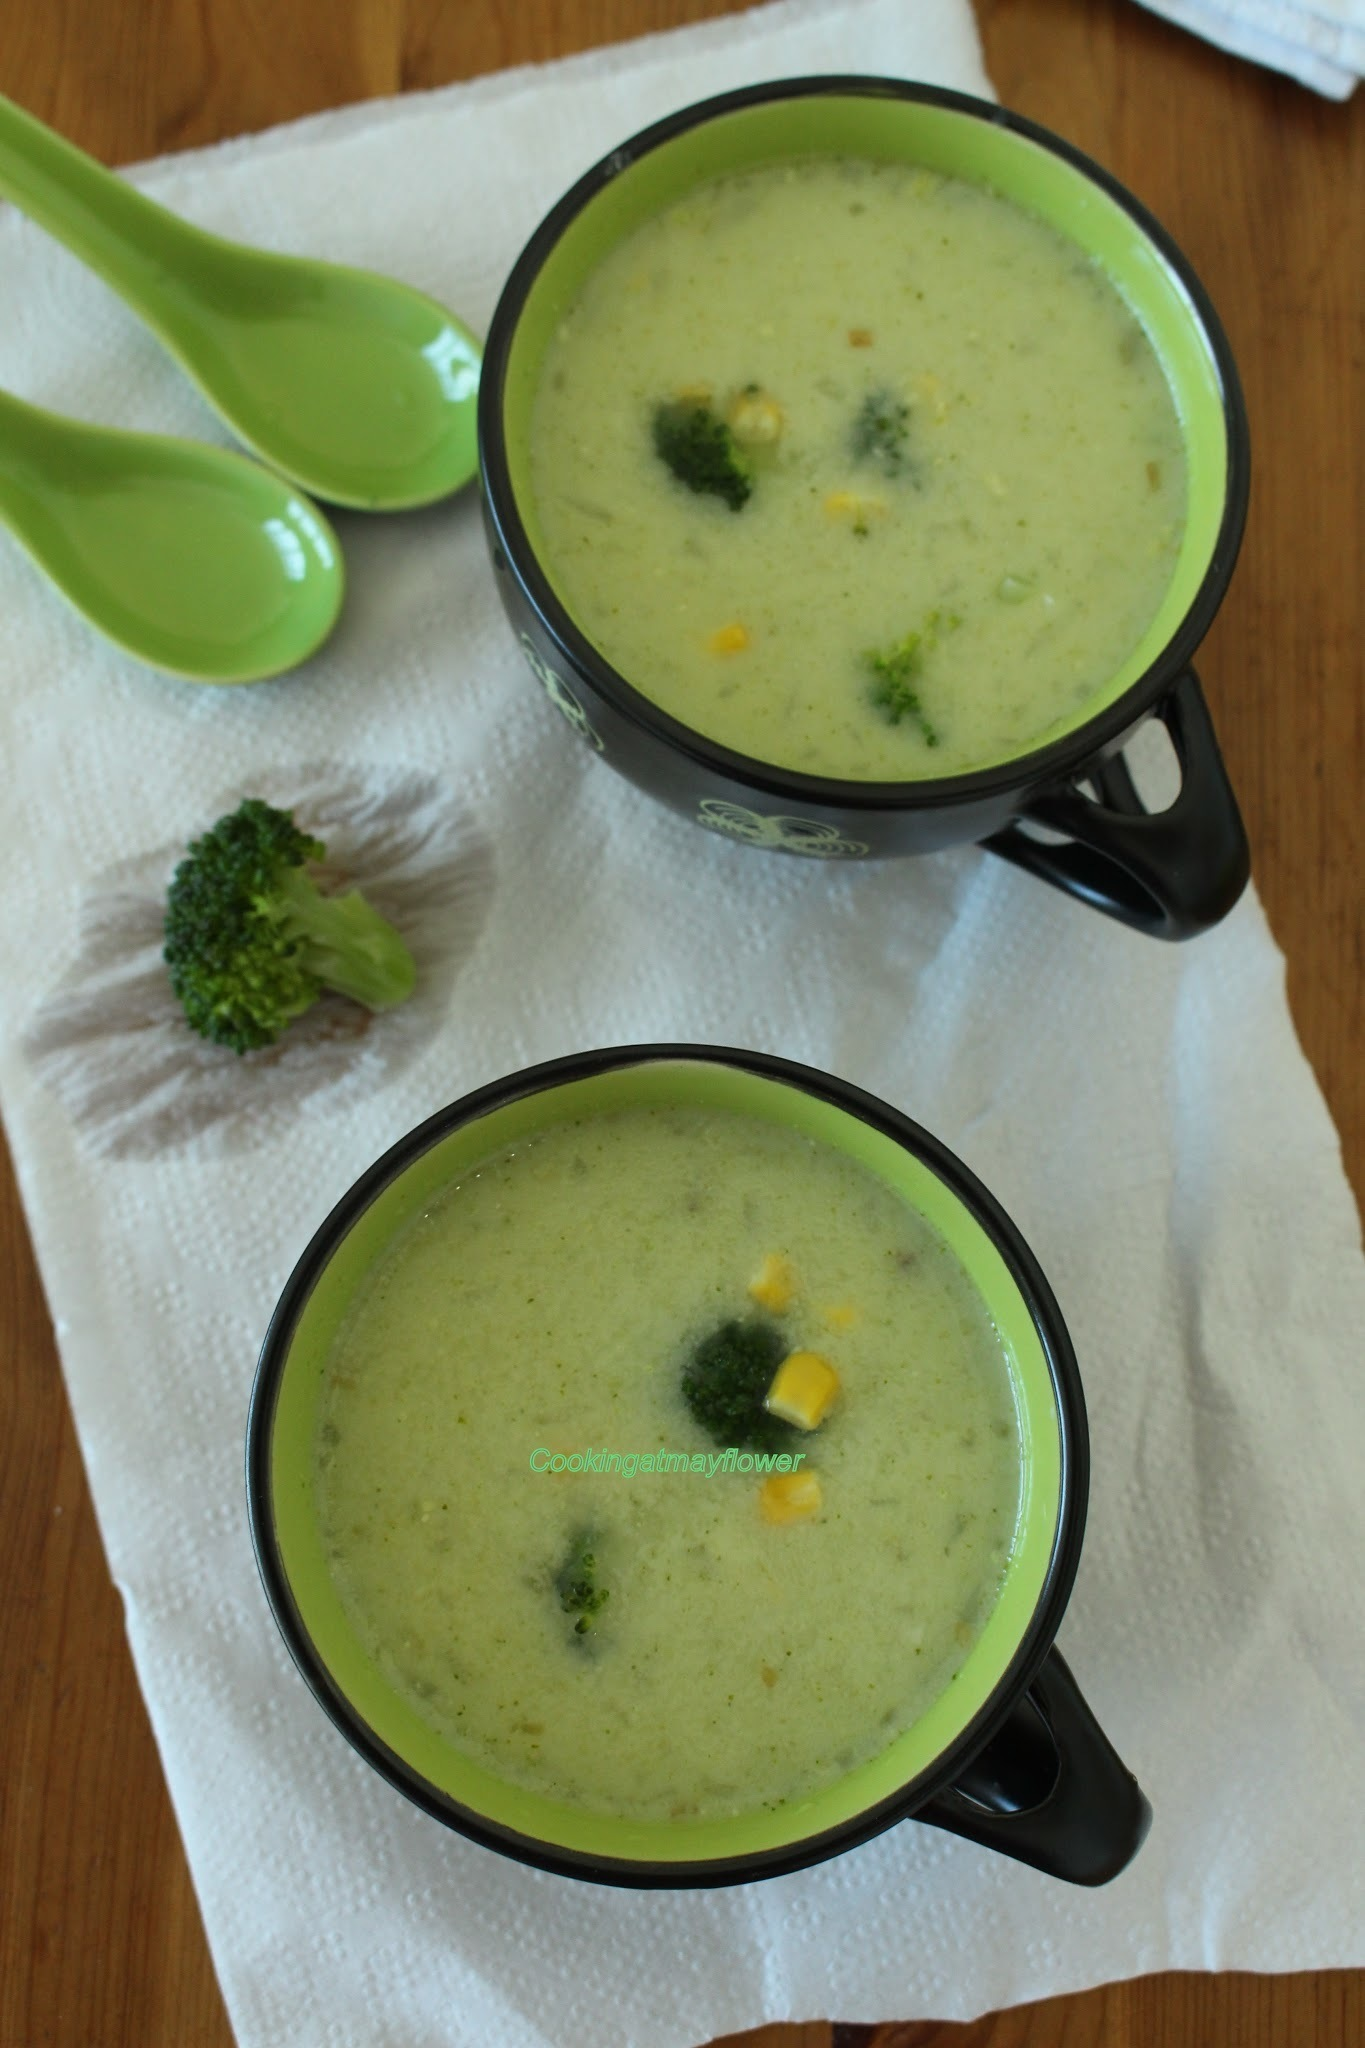 Broccoli oats soup